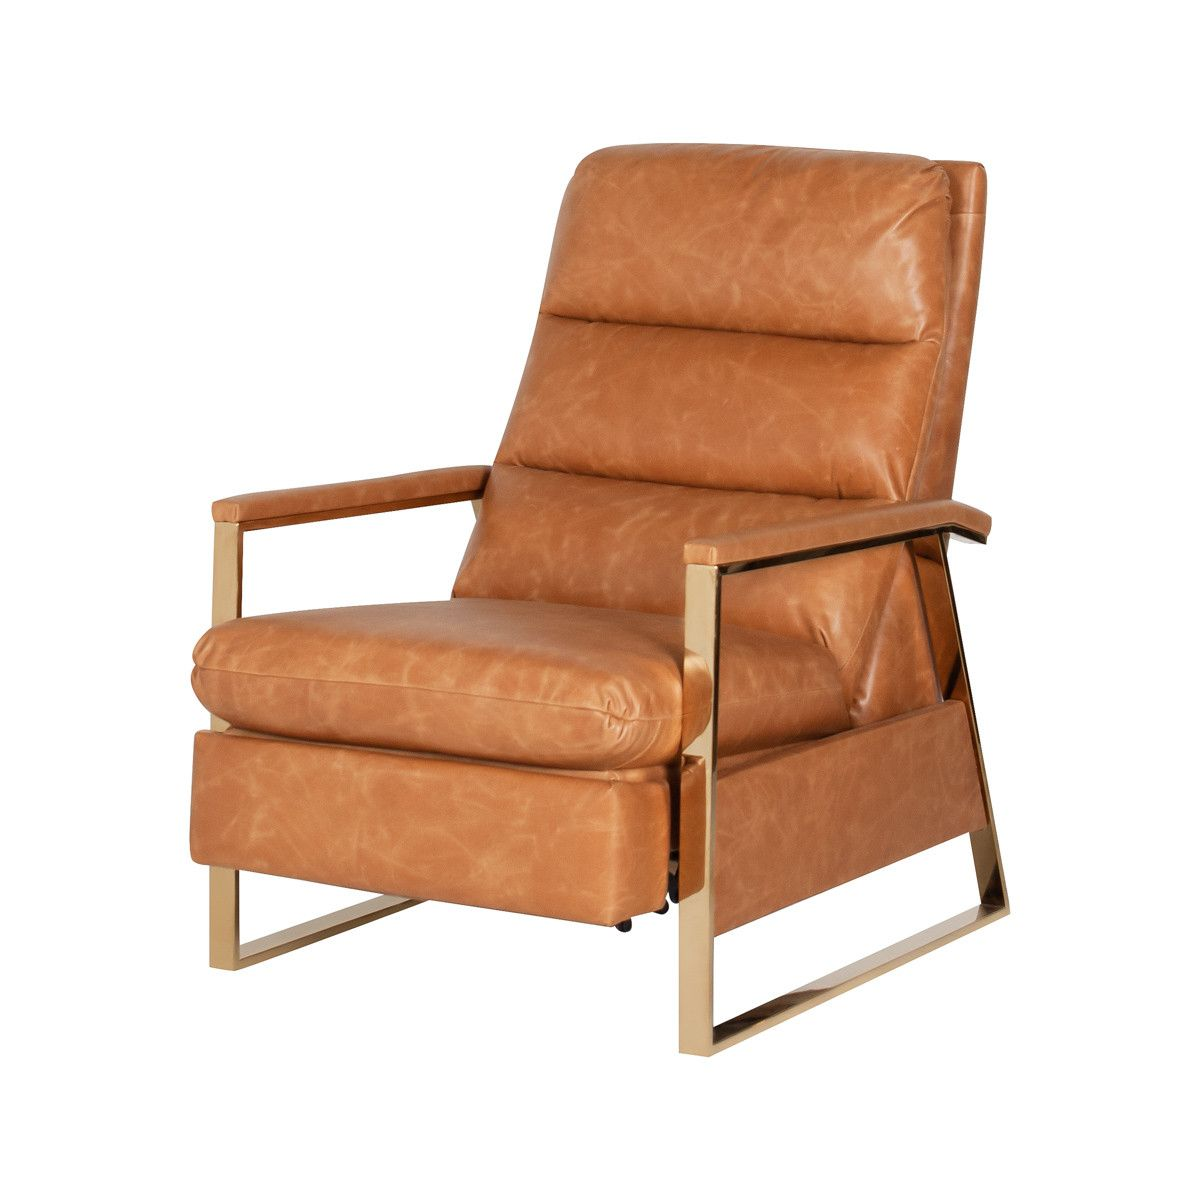 Pablo Recliner In Tobacco Leather In 2020 Leather Upholstery Modern Recliner Recliner